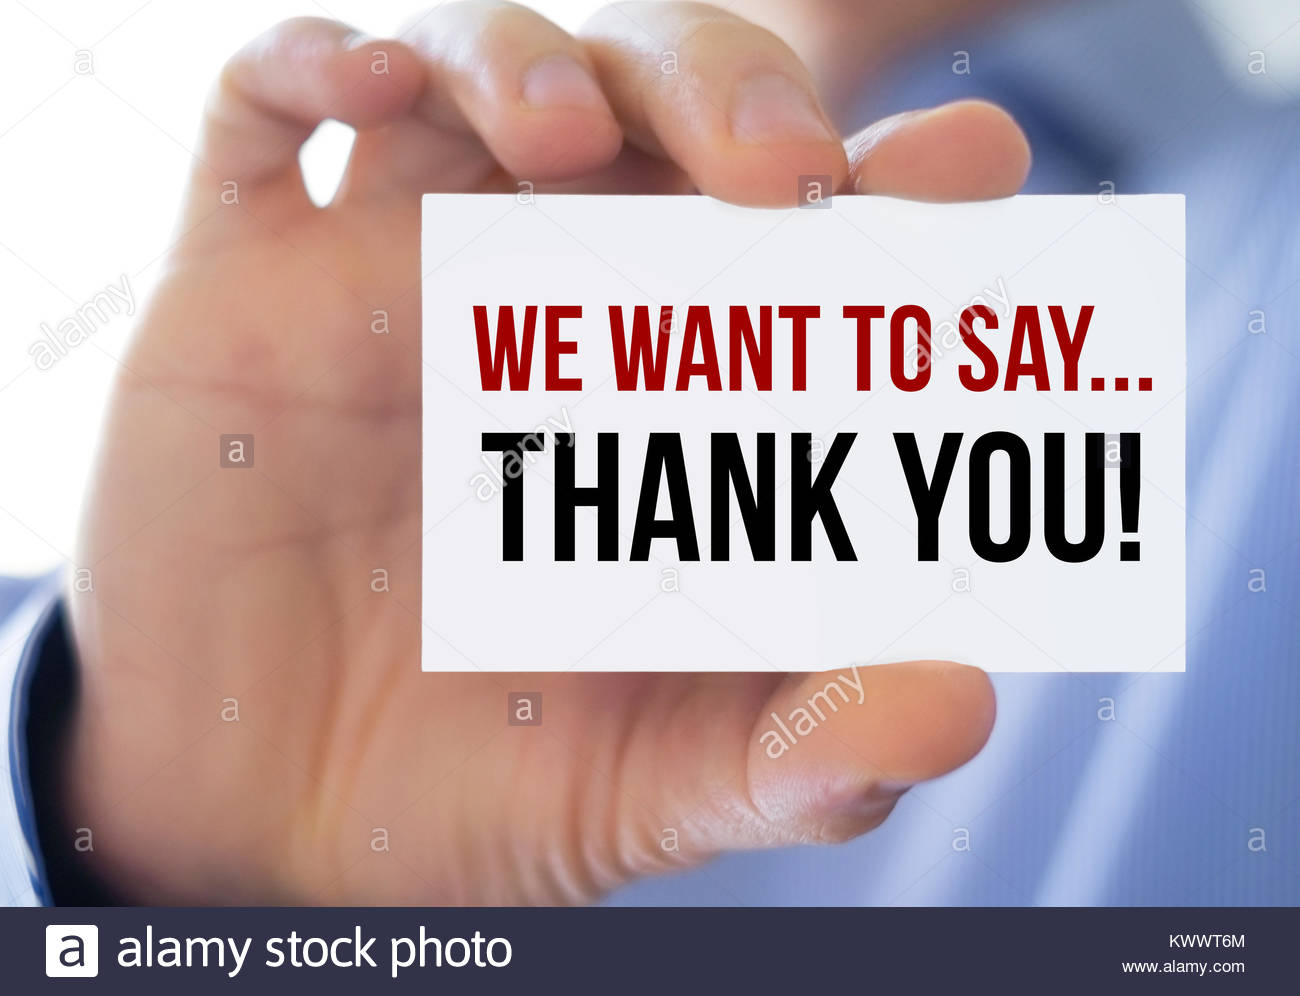 we want to say - thank you - Stock Image